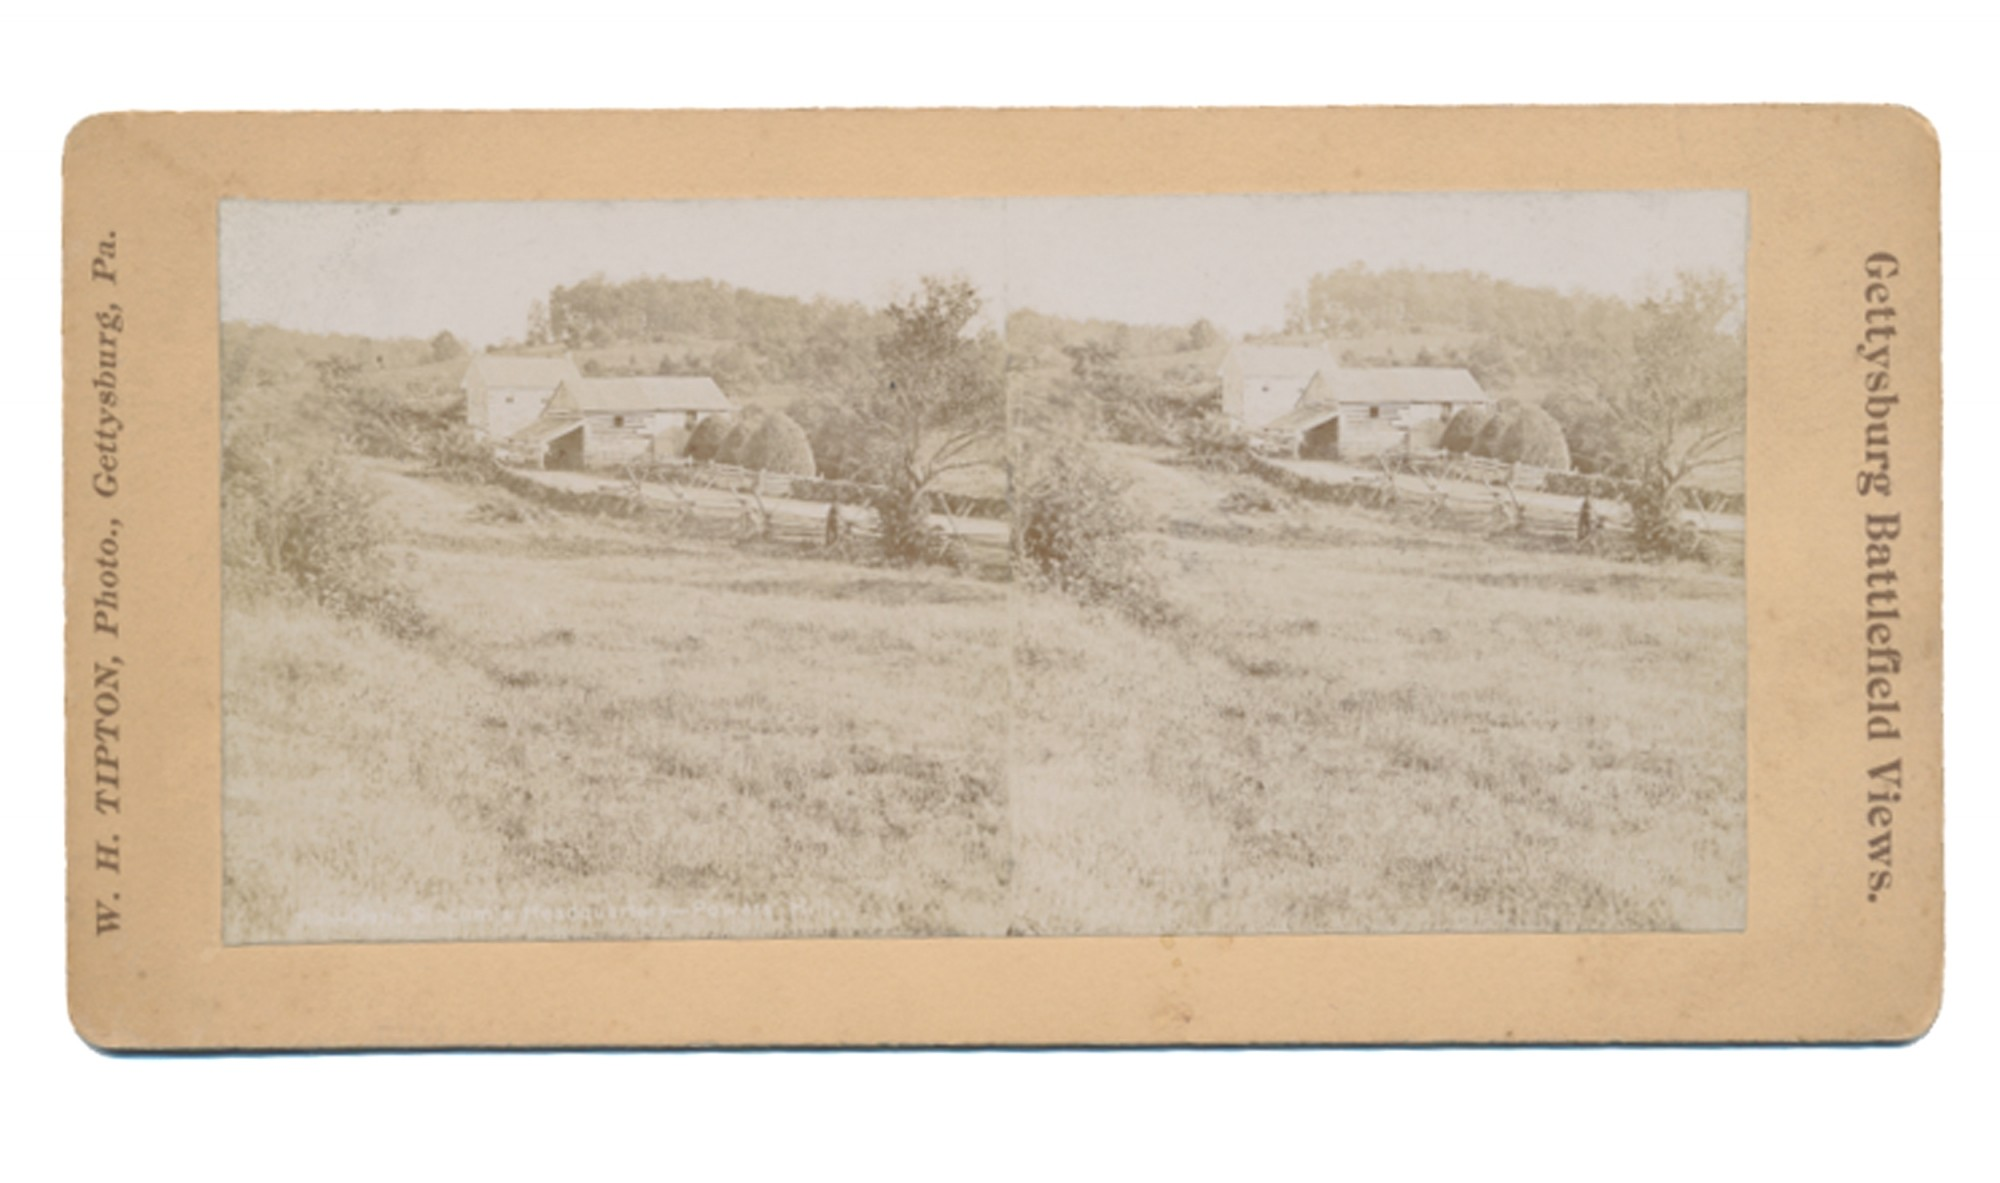 TIPTON STEREOVIEW OF THE LIGHTNER FARM ON THE BALTIMORE PIKE